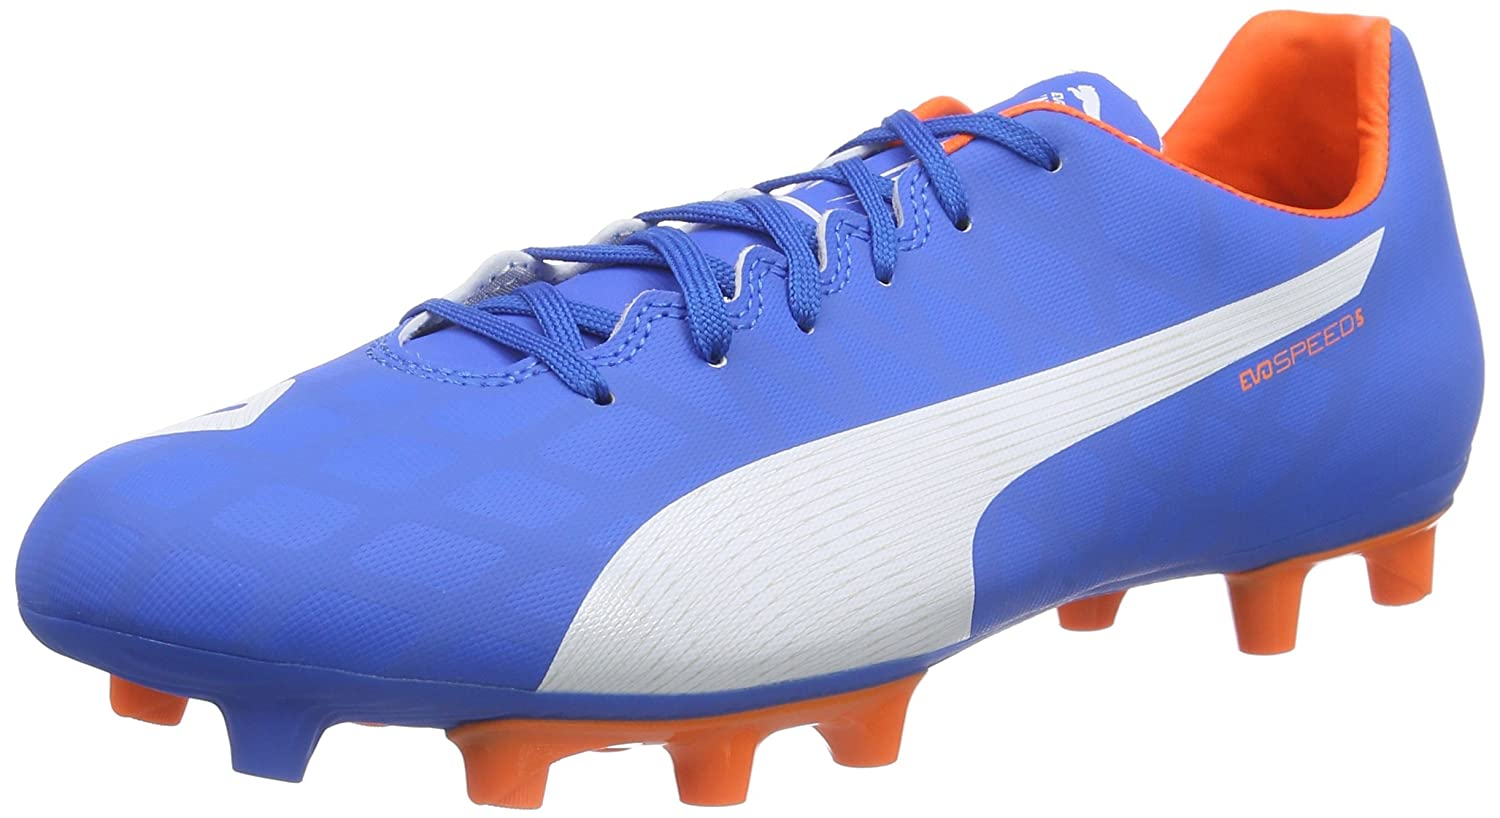 buy puma football shoes online india